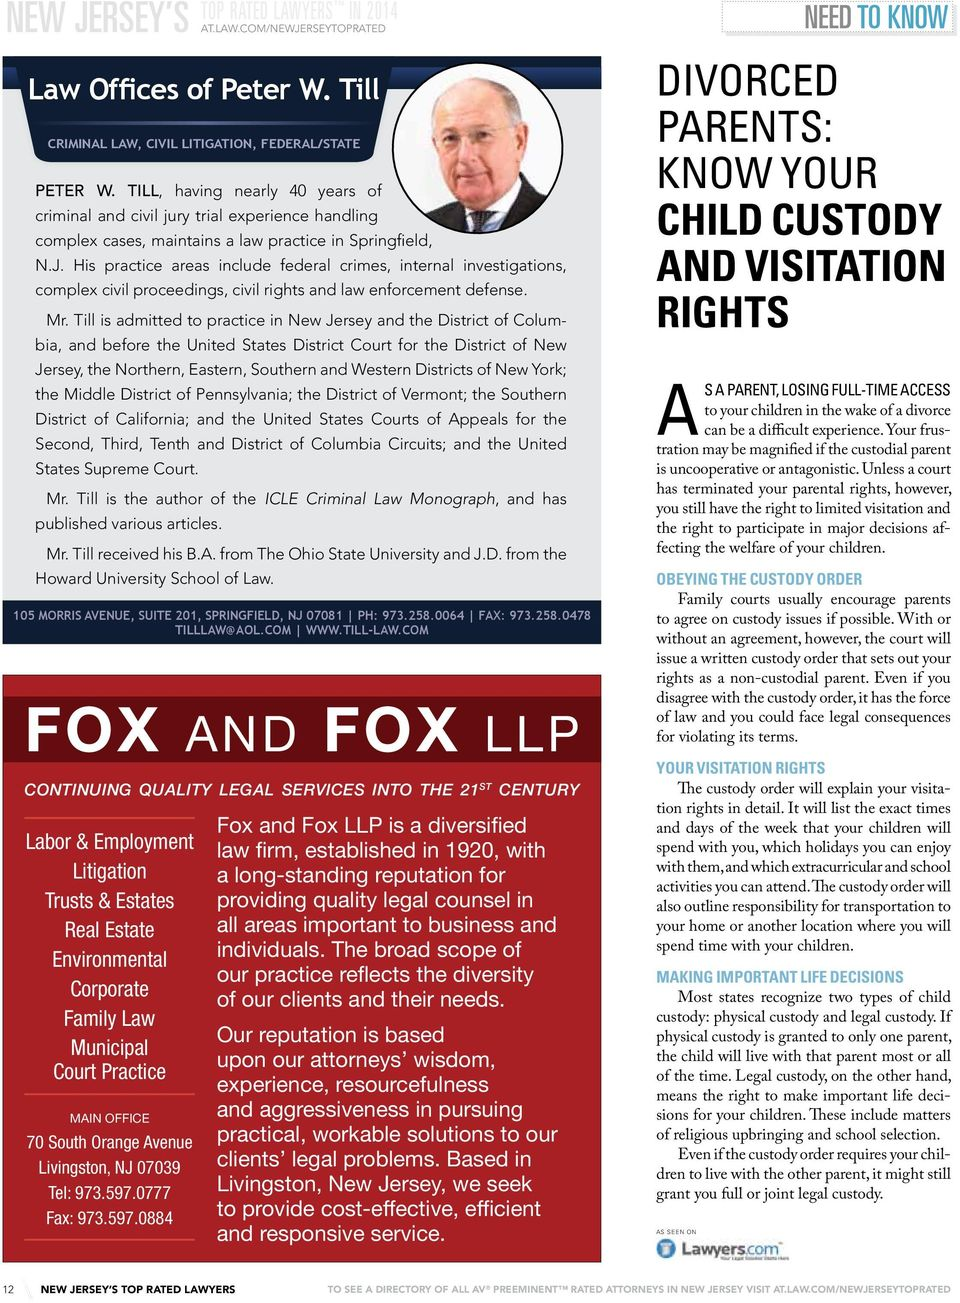 com/newjerseytoprated PAGE PROOF -- FOR APPROVAL ONLY FOX AND FOX LLP CONTINUING QUALITY LEGAL SERVICES INTO THE 21 ST CENTURY Labor & Employment Litigation Trusts & Estates Real Estate Environmental